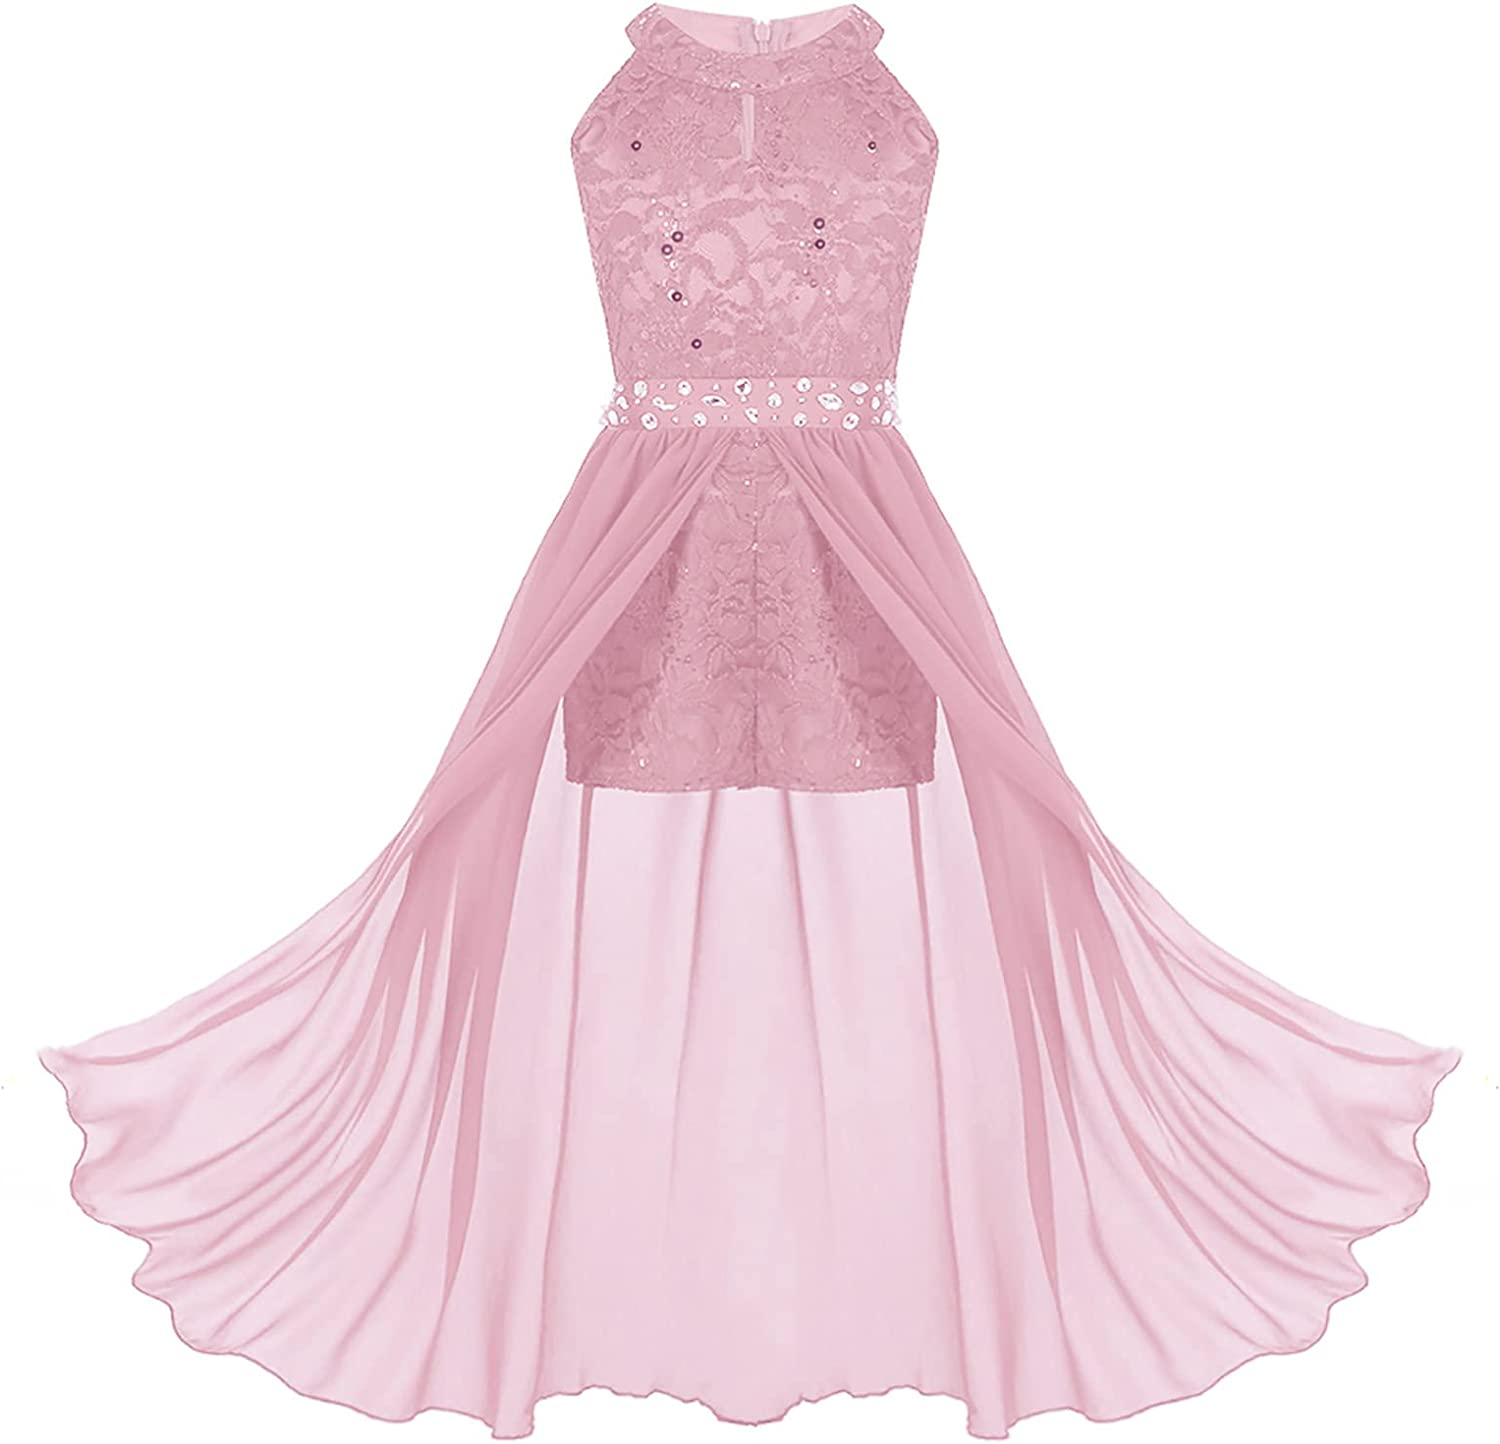 CHICTRY Kids Big Girls Sequin Lace Rhinestone Belt Romper Dresses Wedding Birthday Party Dance Maxi Gowns